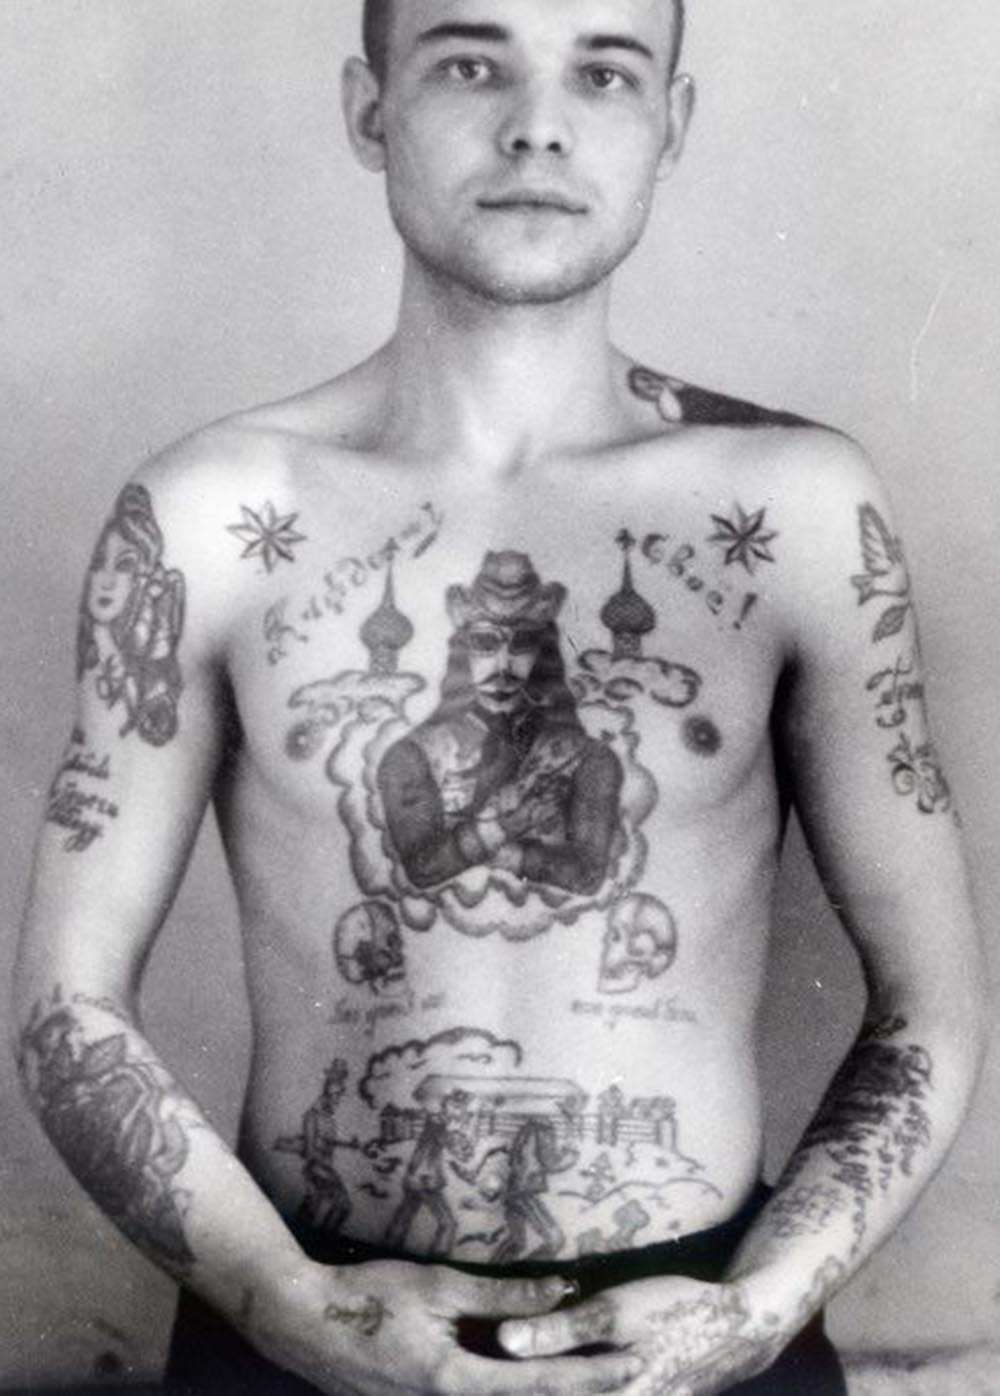 Text on the right arm reads 'Save love, keep freedom.' Text on the left arm reads 'Sinner.' Text across the chest reads 'To each his own.' Text underneath the skulls reads 'God against everyone, everyone against God.' Text on the wrist in German reads 'Mein Gott' (My God). A cowboy with a gun shows this thief is prepared to take risks and is ready to exploit any opportunity. A dove carrying a twig (left shoulder) is a symbol of good tidings and deliverance from suffering.